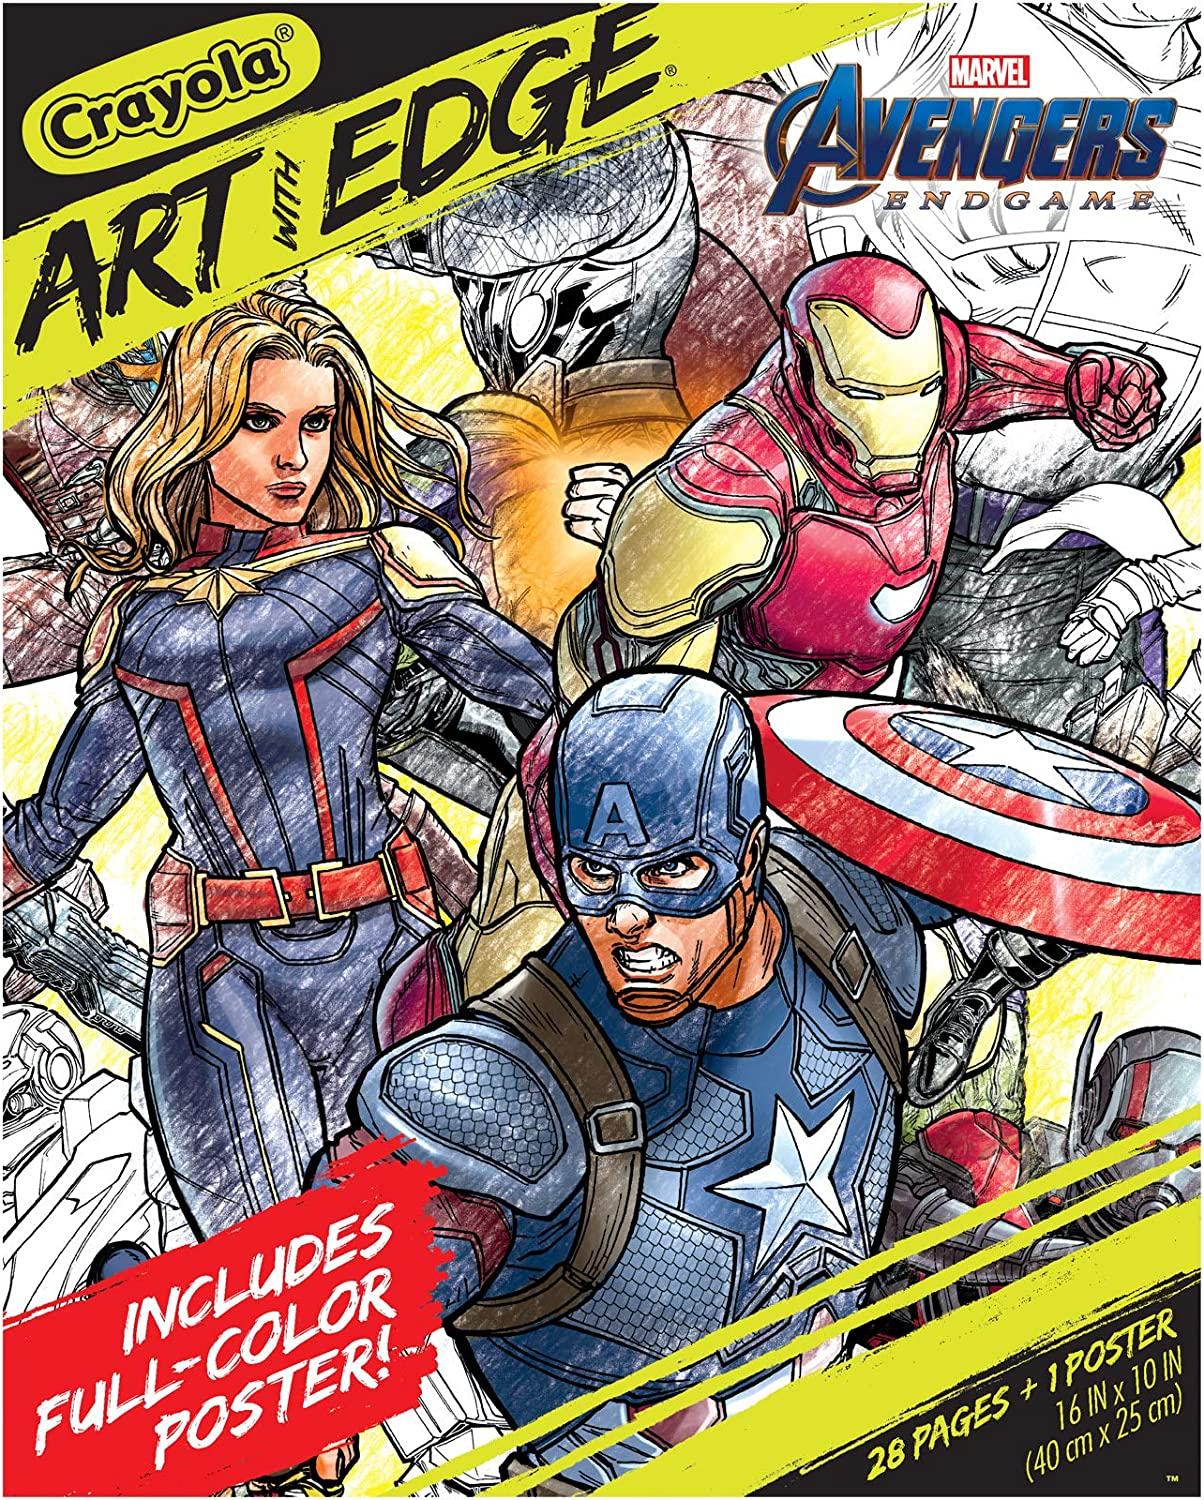 New Avengers Endgame Coloring Page for Marvel Fans | Buku mewarnai ... | 1500x1206